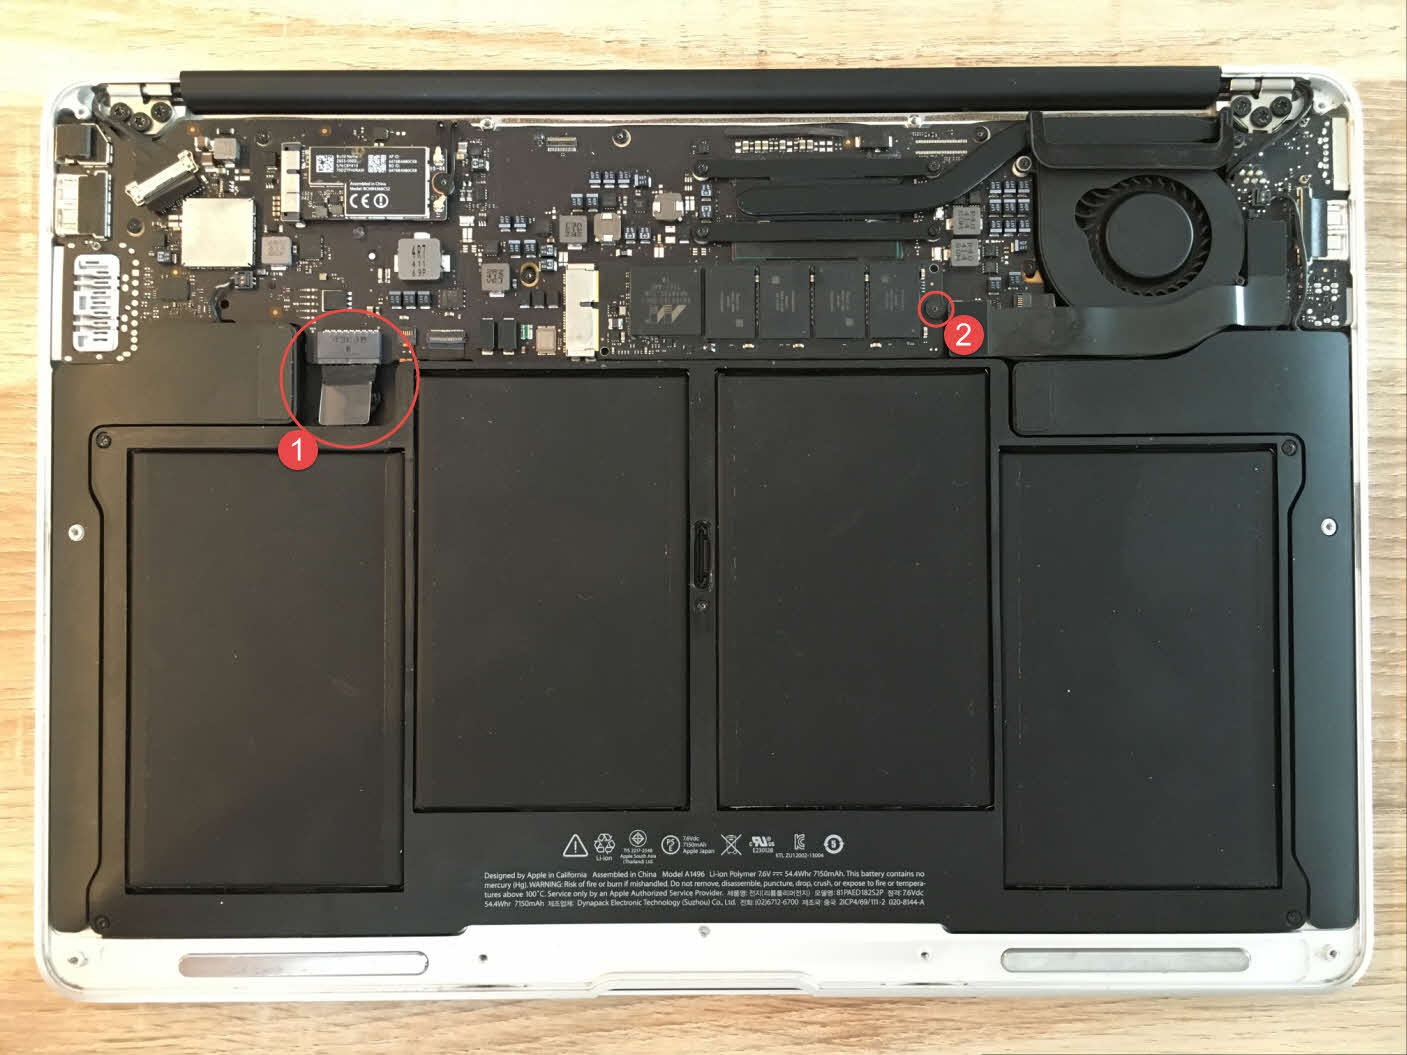 MacBook Air open